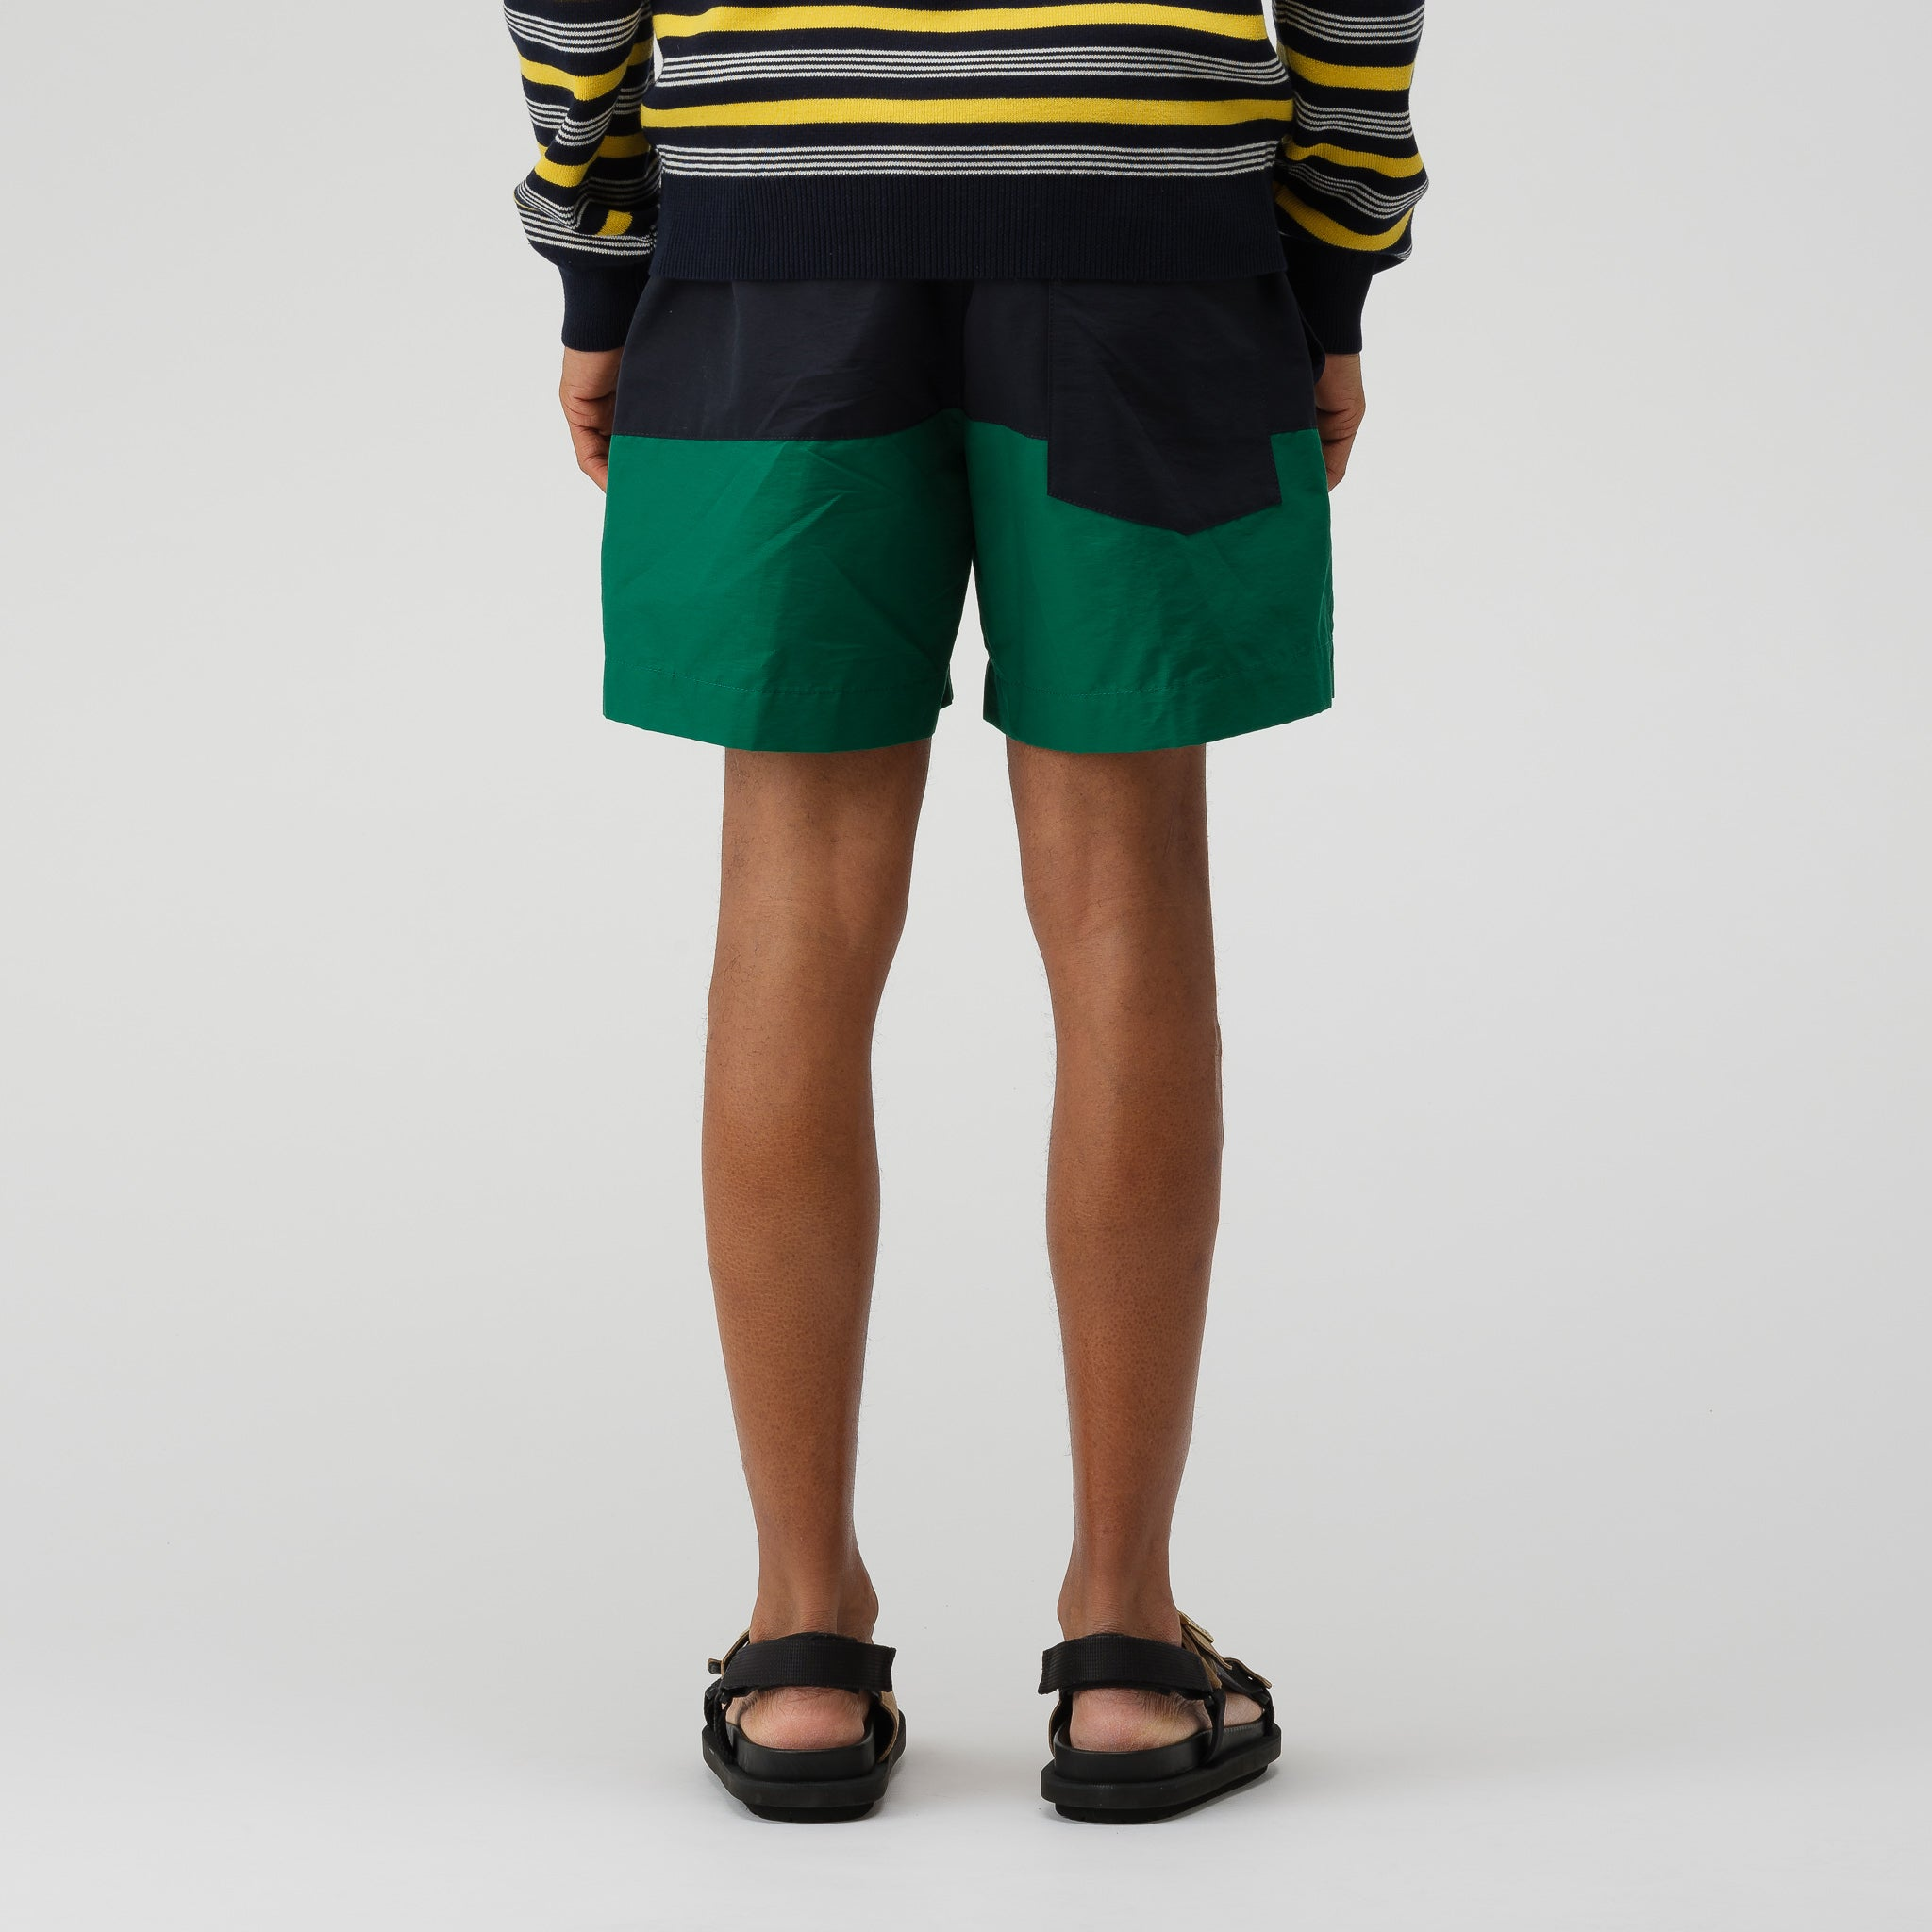 Nylon Grosgrain Swim Shorts in Green/Navy/Beige